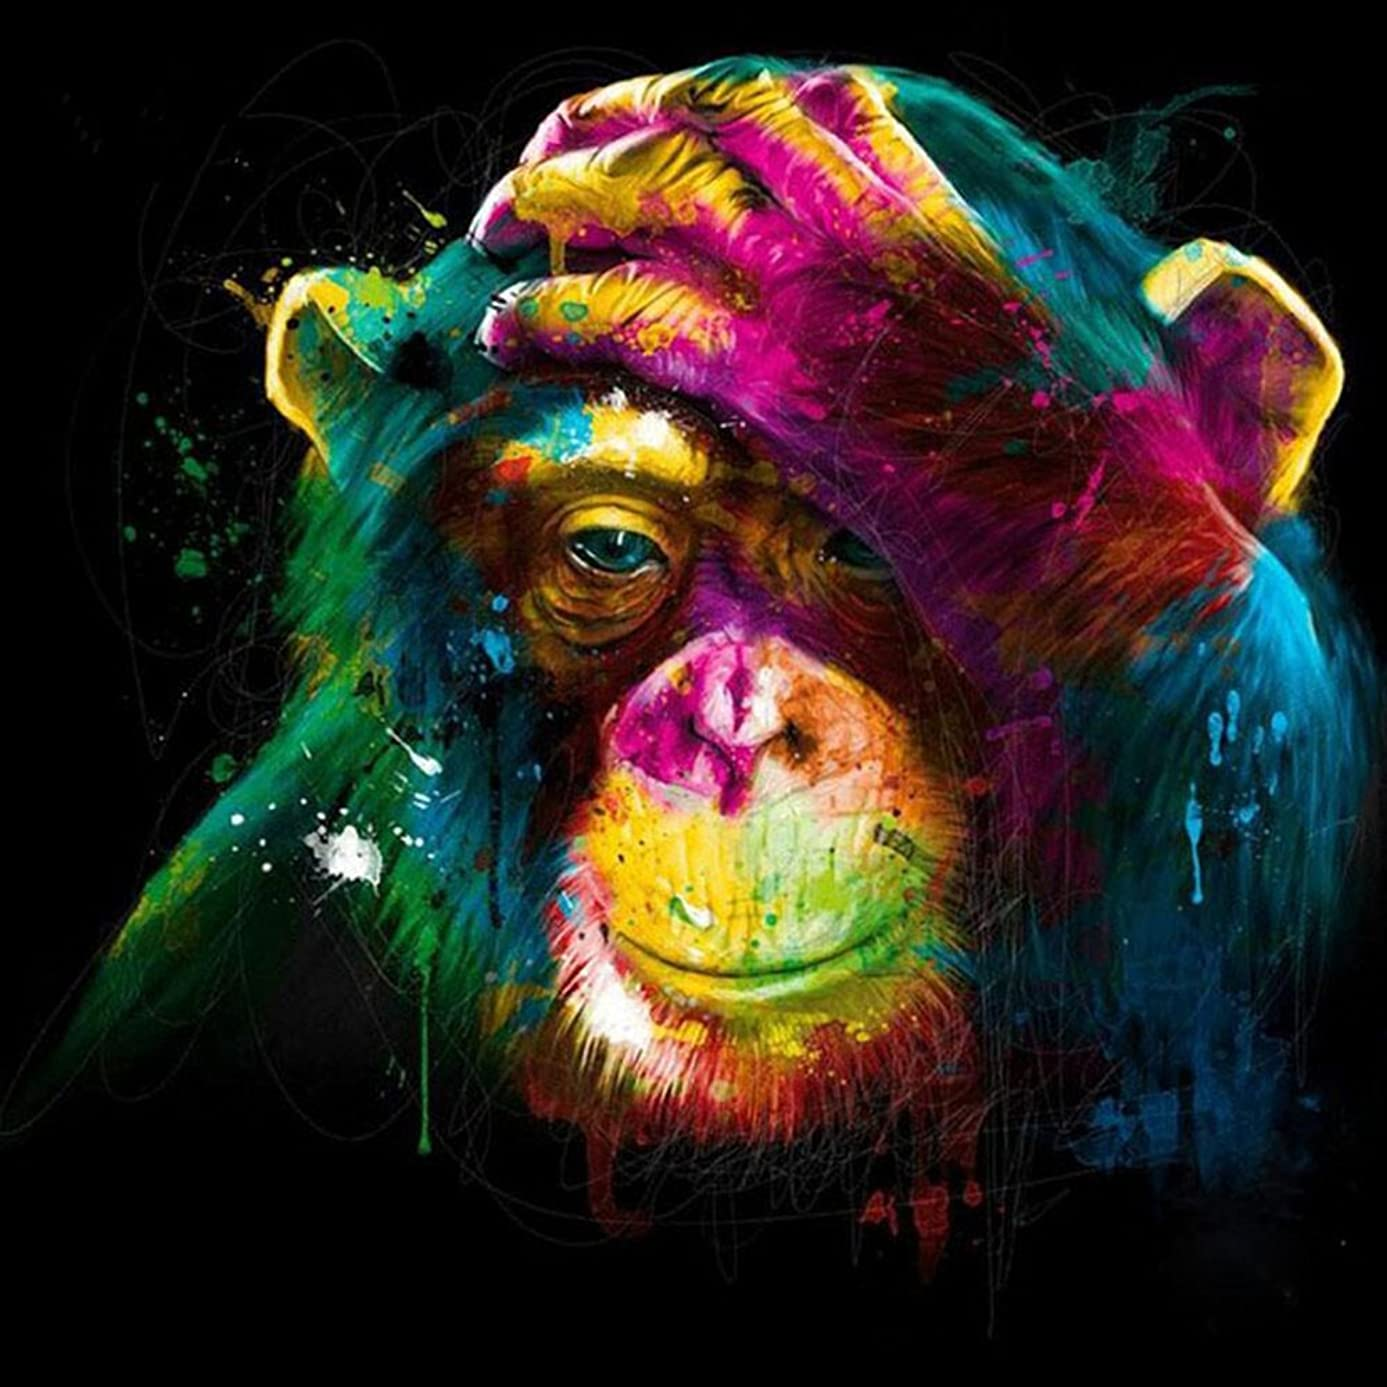 5D DIY Diamond Painting Rhinestone Pictures Of Crystals Embroidery Kits Arts, Crafts & Sewing Cross Stitch Home Decor Craft (Gorilla)